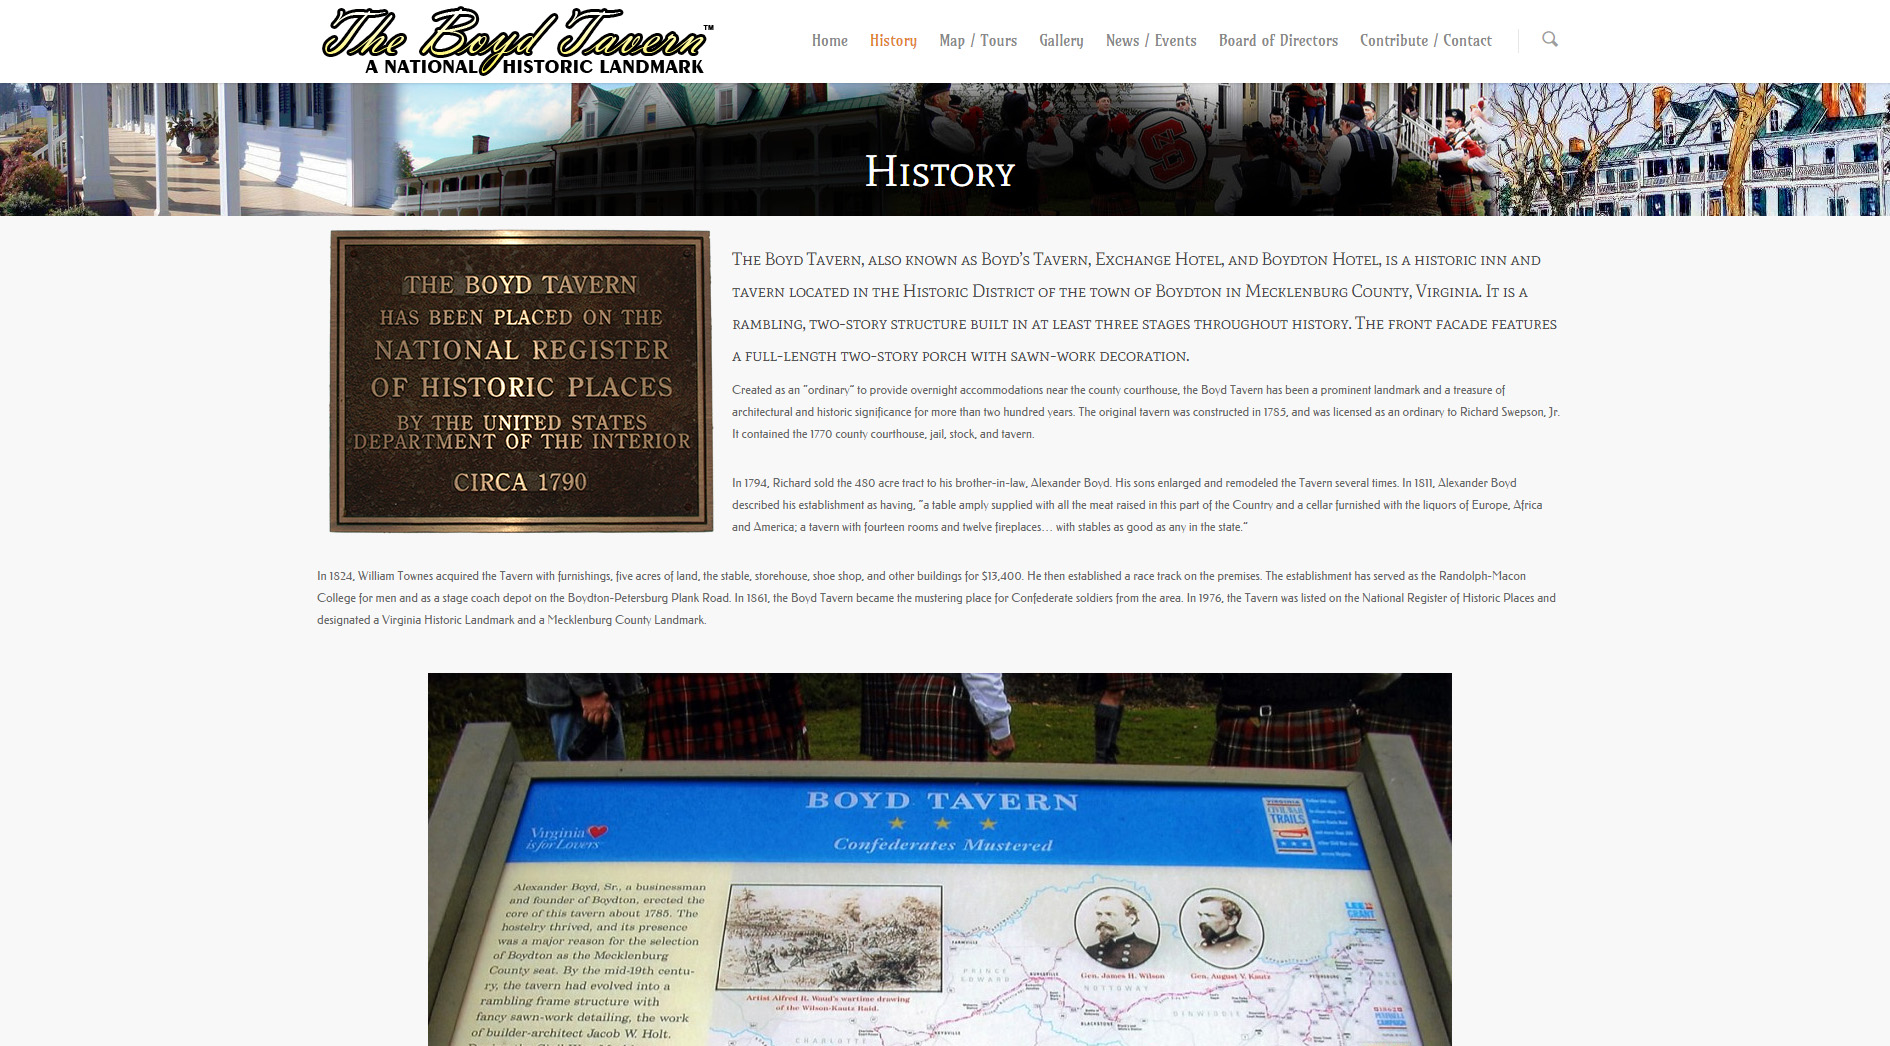 The history page details the history of the tavern, complete with photos from the descriptive panels at the tavern.